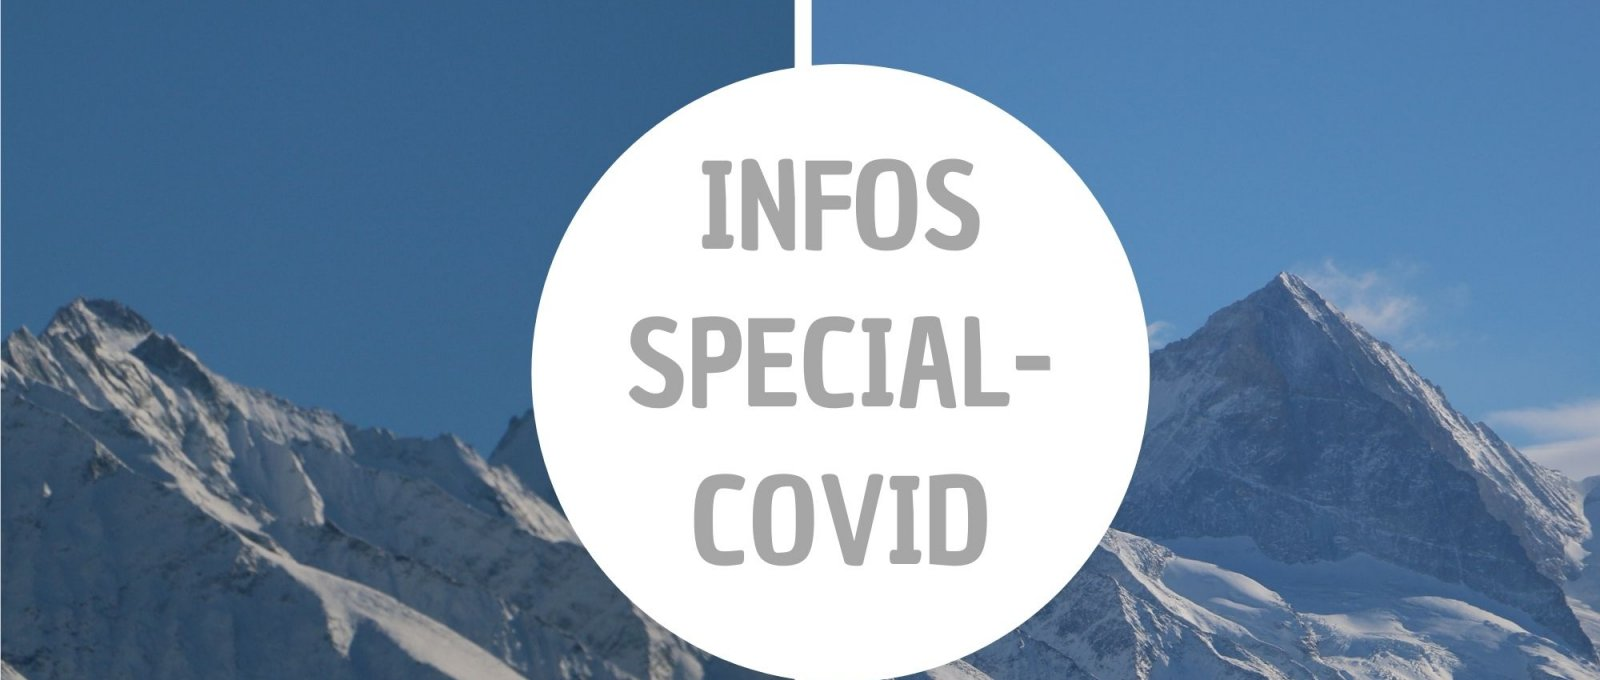 INFOS SPECIAL-COVID